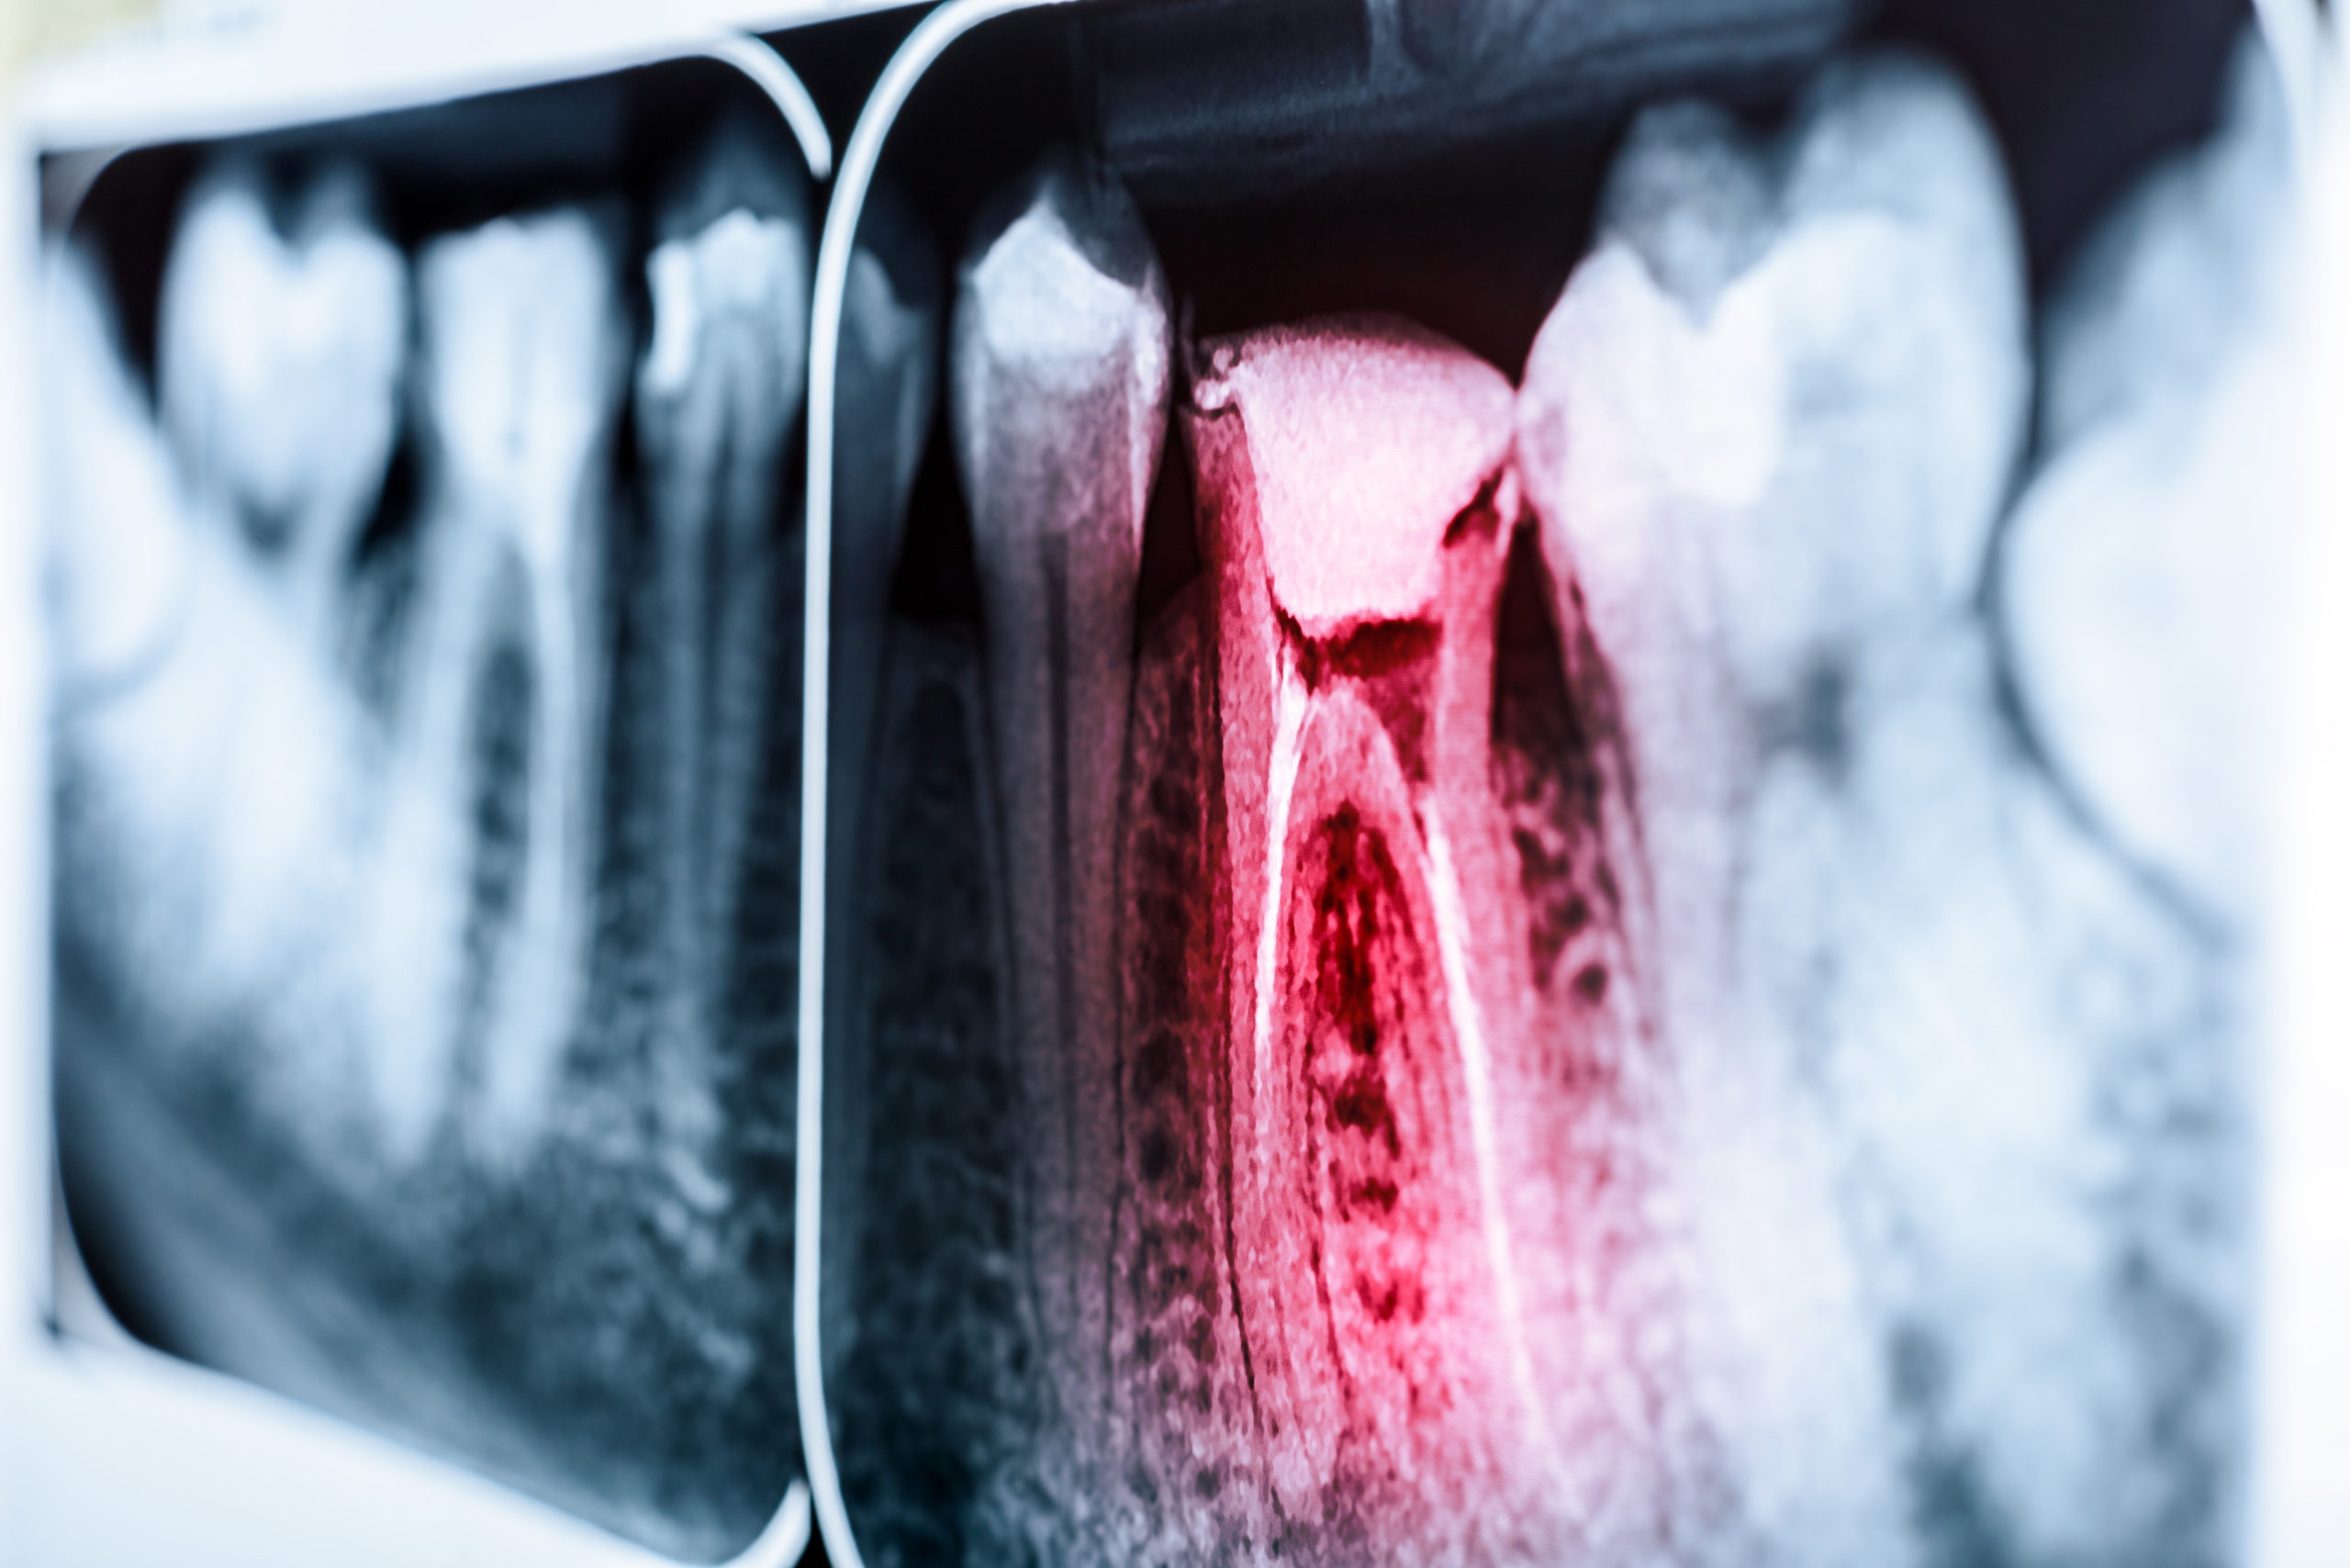 Pain Of Tooth Decay On Teeth X-Ray